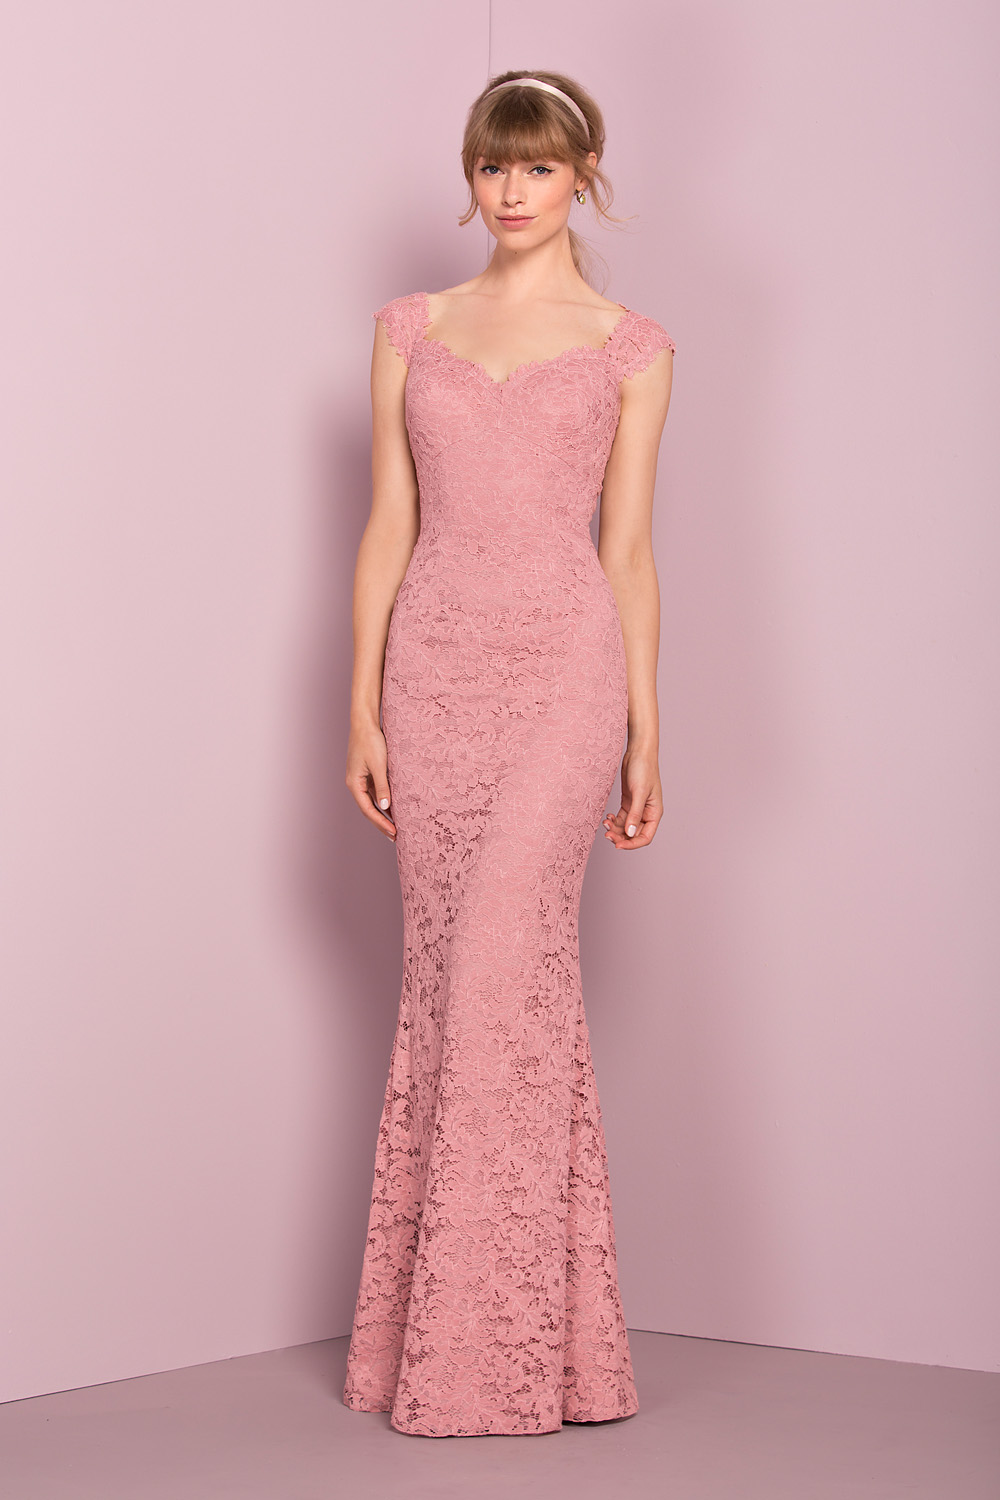 Kelsey rose bridesmaid dresses 2016 12546 kelsey rose bridesmaid dress romantique bridal magherafelt ombrellifo Image collections